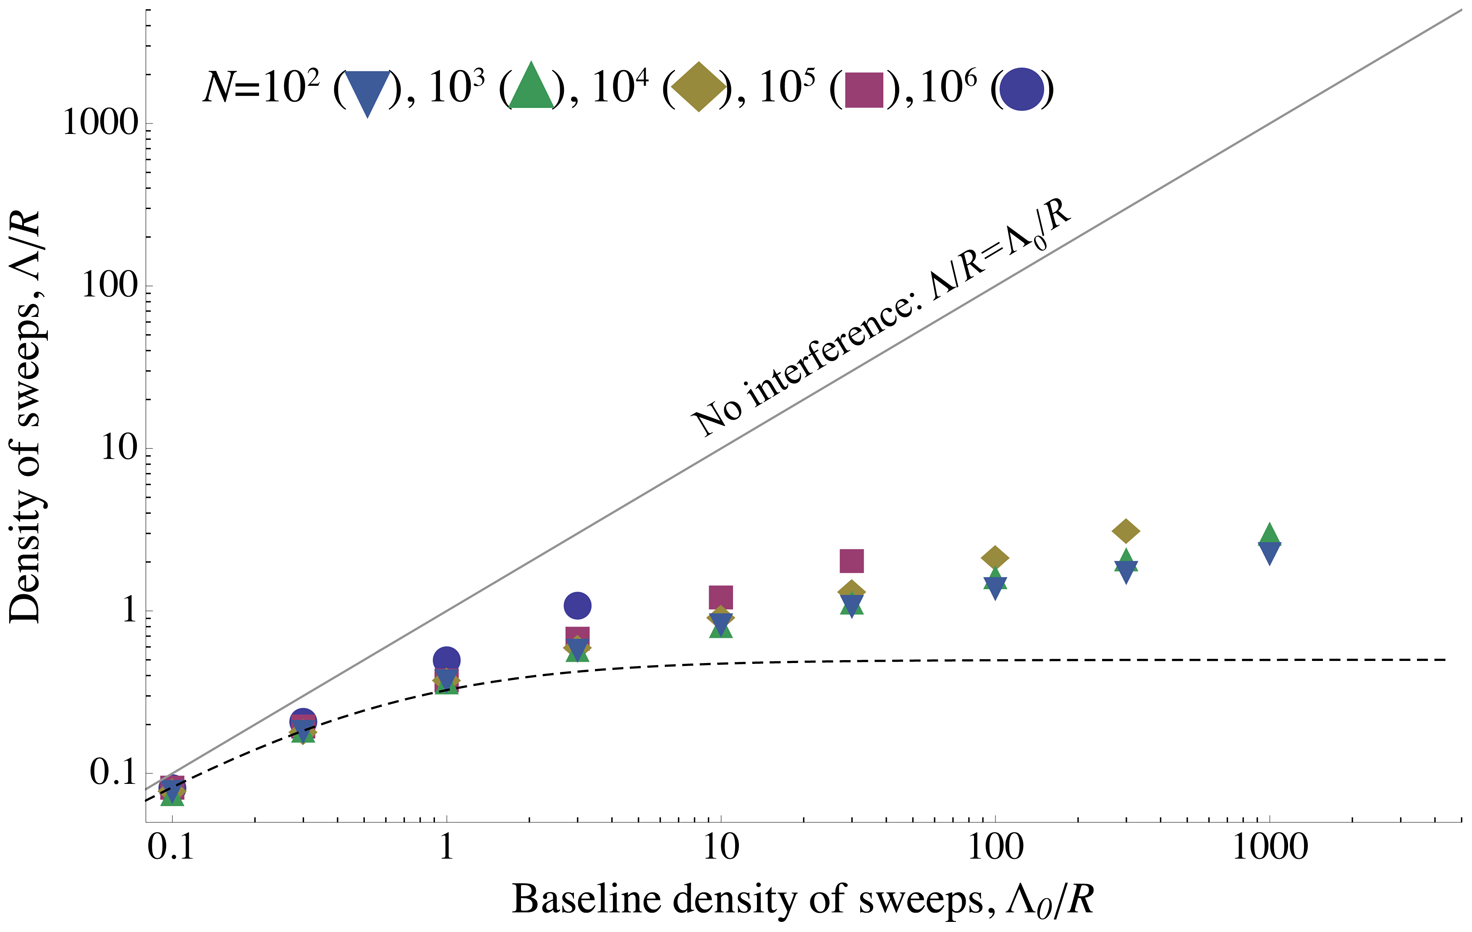 The density of sweeps as a function of the baseline density.